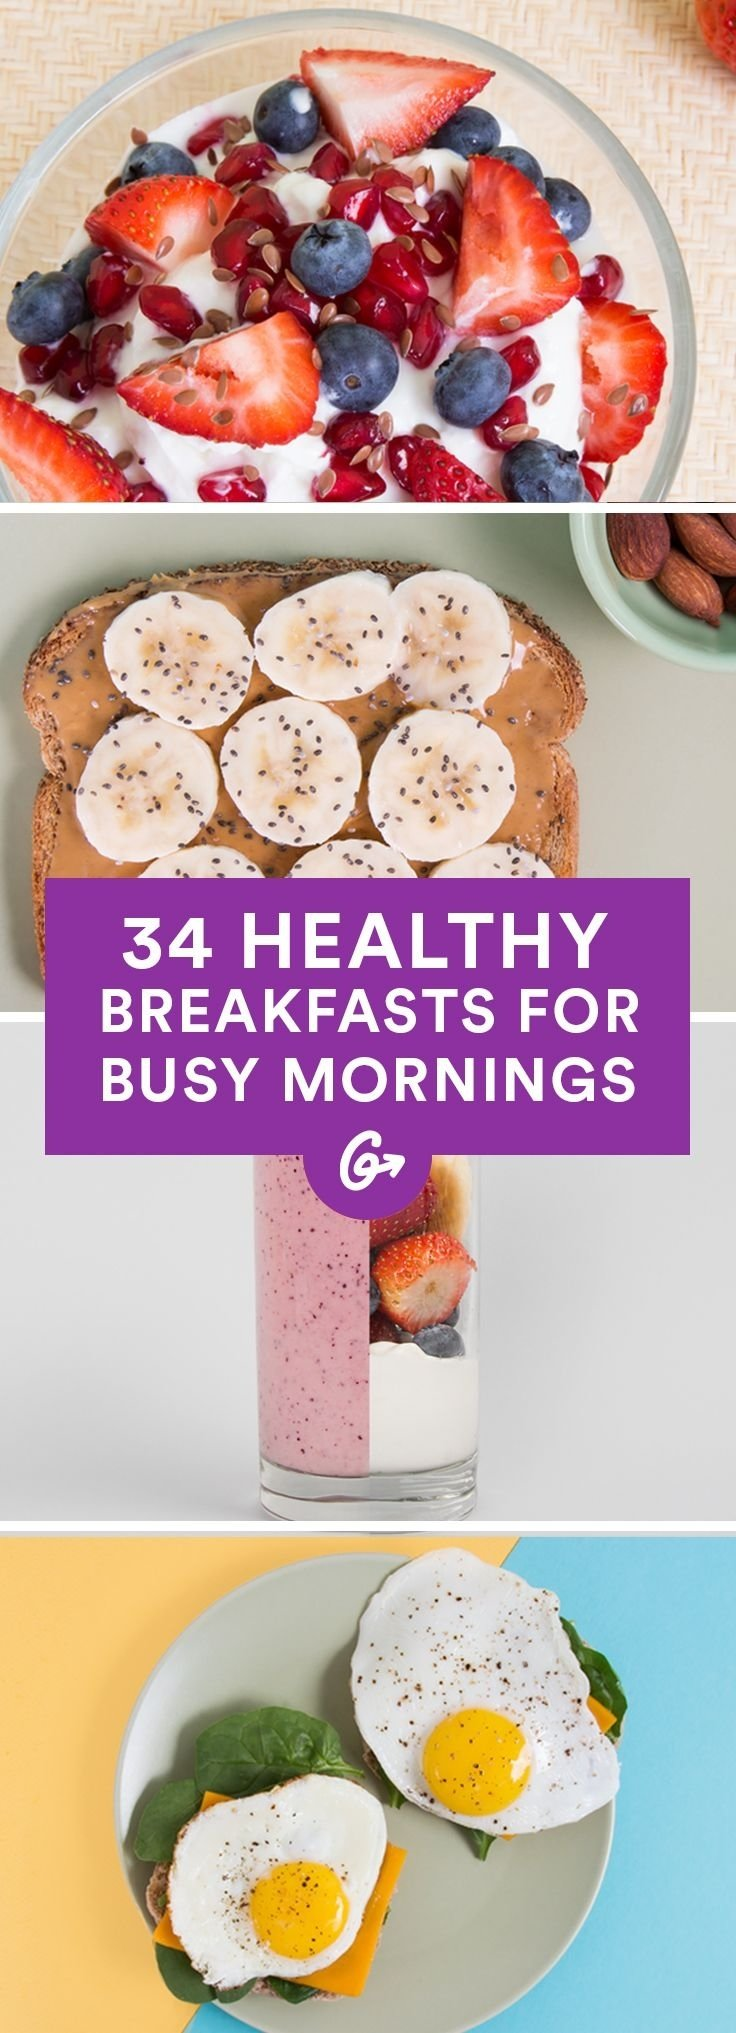 10 Attractive Quick And Easy Breakfast Ideas 39 healthy breakfasts for busy mornings healthy breakfasts 2 2020